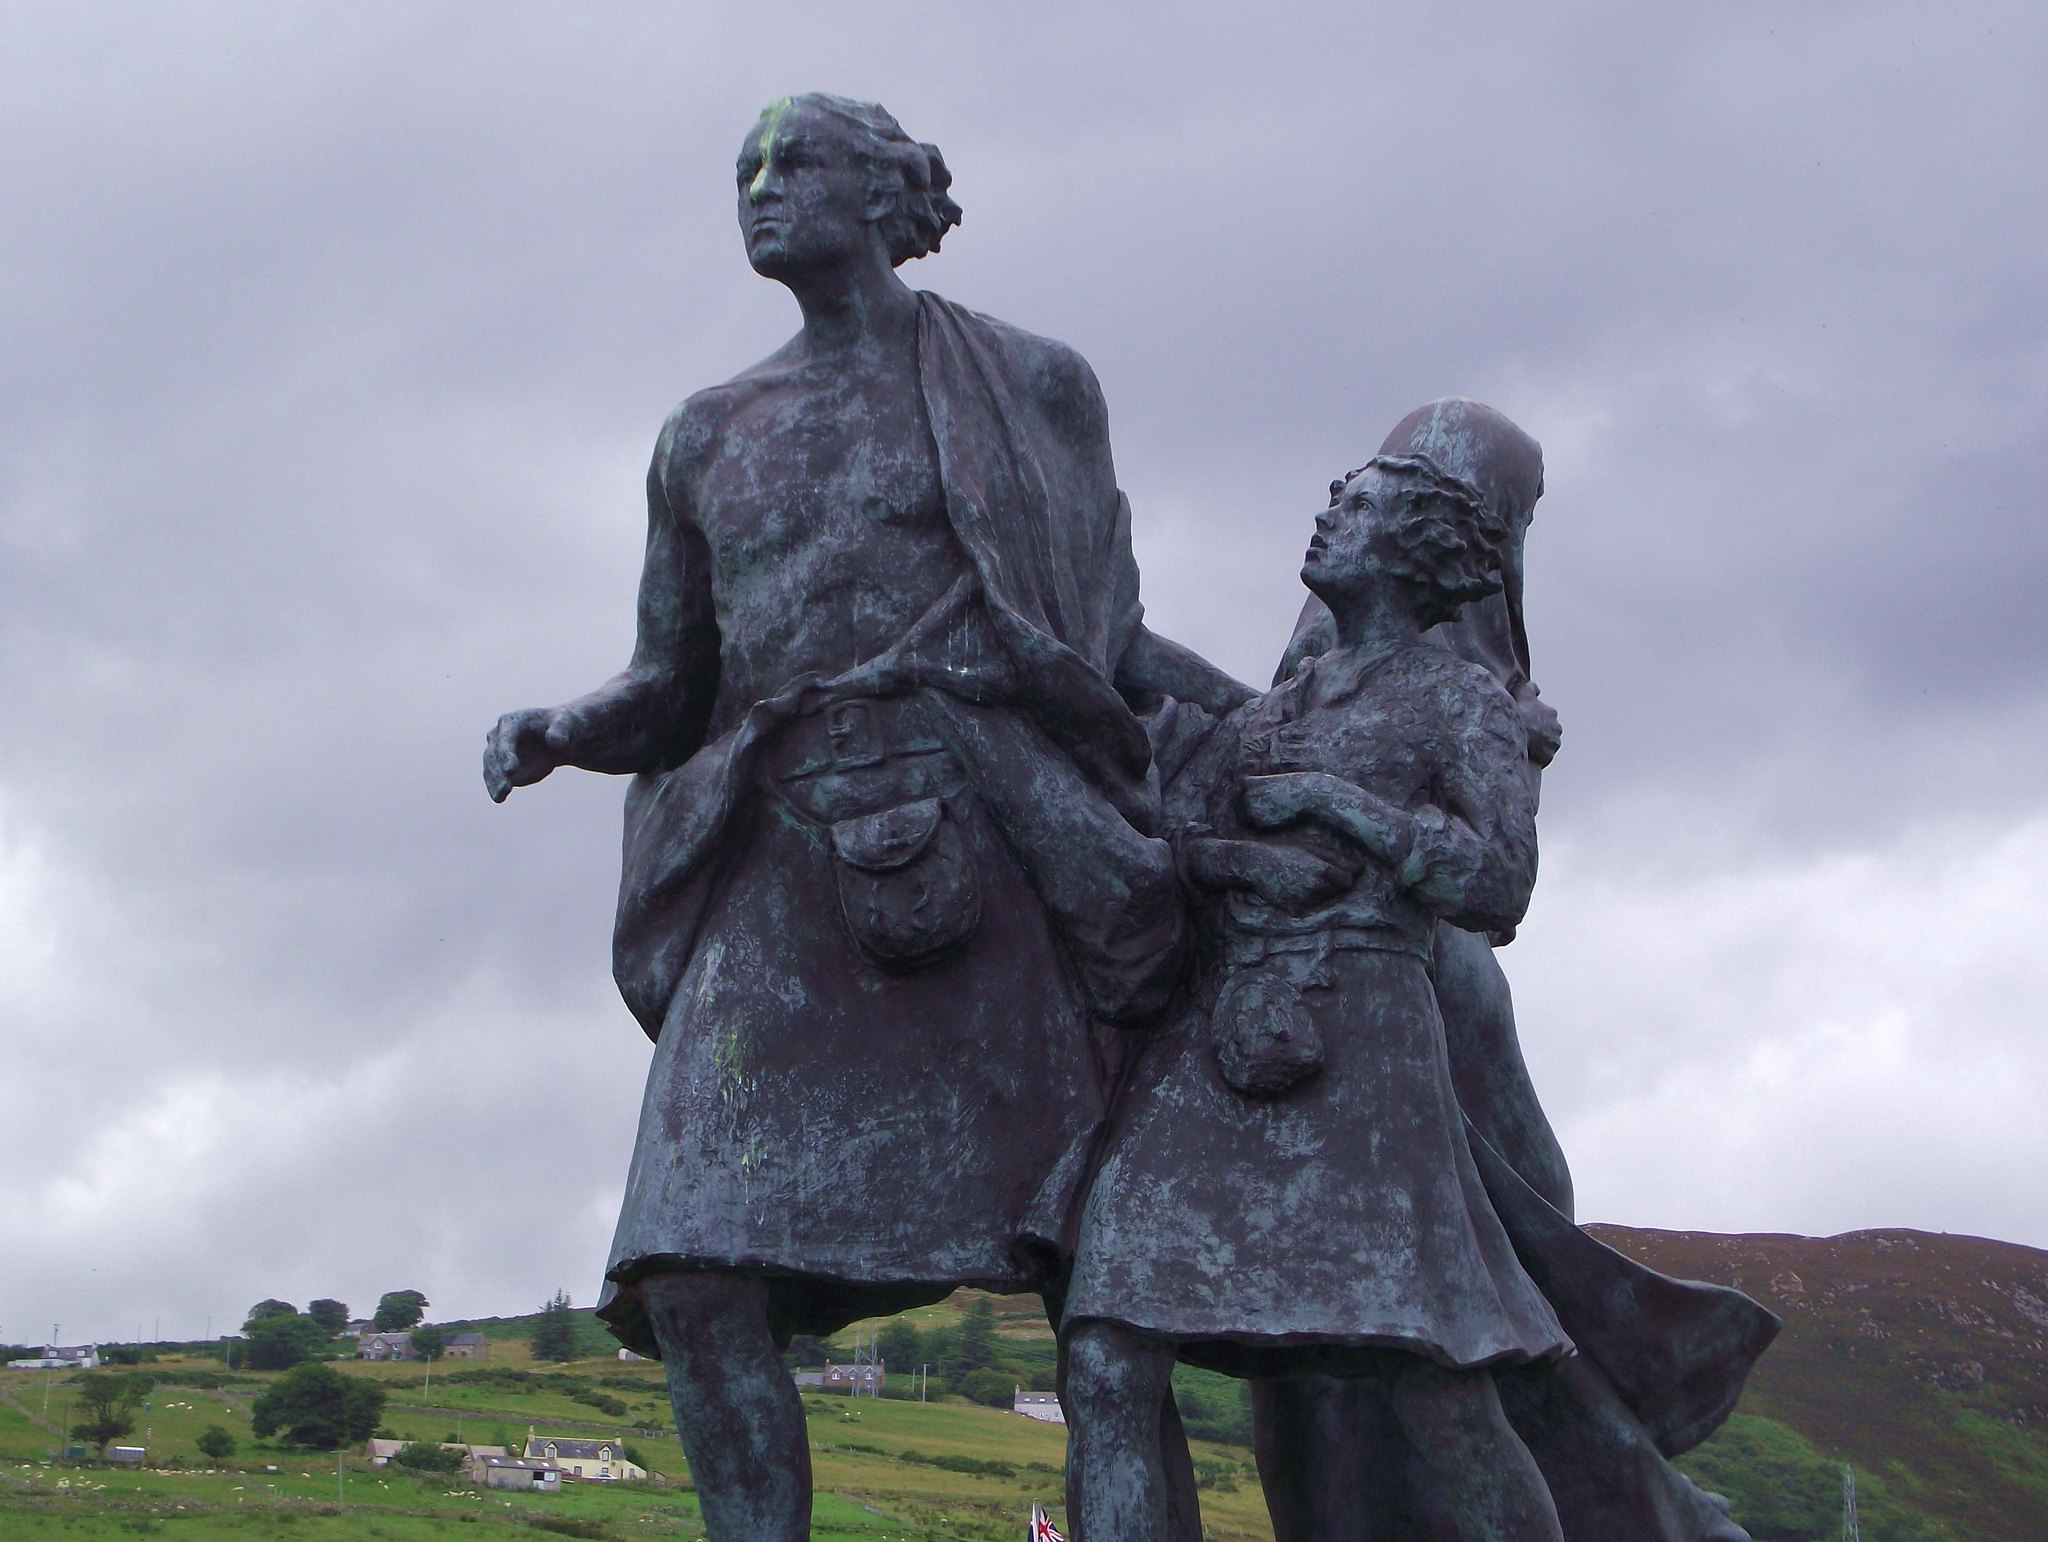 """Emigrants Statue at Helmsdale Sutherland Scotland Behind the statue is Marrel Hill (Creag Marail) and the crofts on the steep brae of West Helmsdale. """"The Emigrants commemorates the people of the Highlands and Islands of Scotland who, in the face of great adversity, sought freedom, hope and justice beyond these shores. They and their descendants went forth and explored continents, built great countries and cities and gave their enterprise and culture to the world. This is their legacy. Their voices will echo forever thro the empty straths and glens of their homeland."""" Thus reads the inscription on the """"The Emigrants"""" statue in Couper Park, overlooking the village (and harbour) of Helmsdale in the Parish of Kildonan and the County of Sutherland in Northern Scotland. The statue depicts a kilted father leading his child forward towards the North Sea, while the mother looks back wistfully at the Strath (Gaelic: wide valley) of Kildonan from whence they have come."""